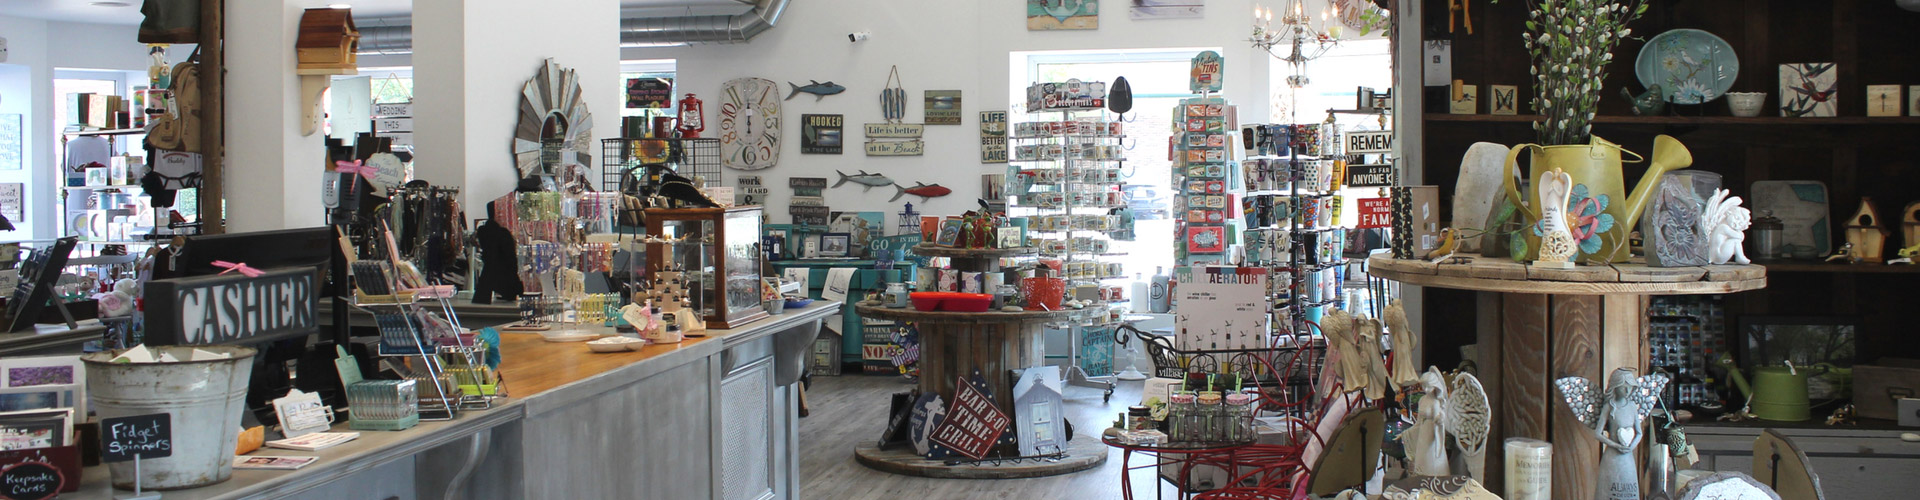 Interior of gift shop with lots of items